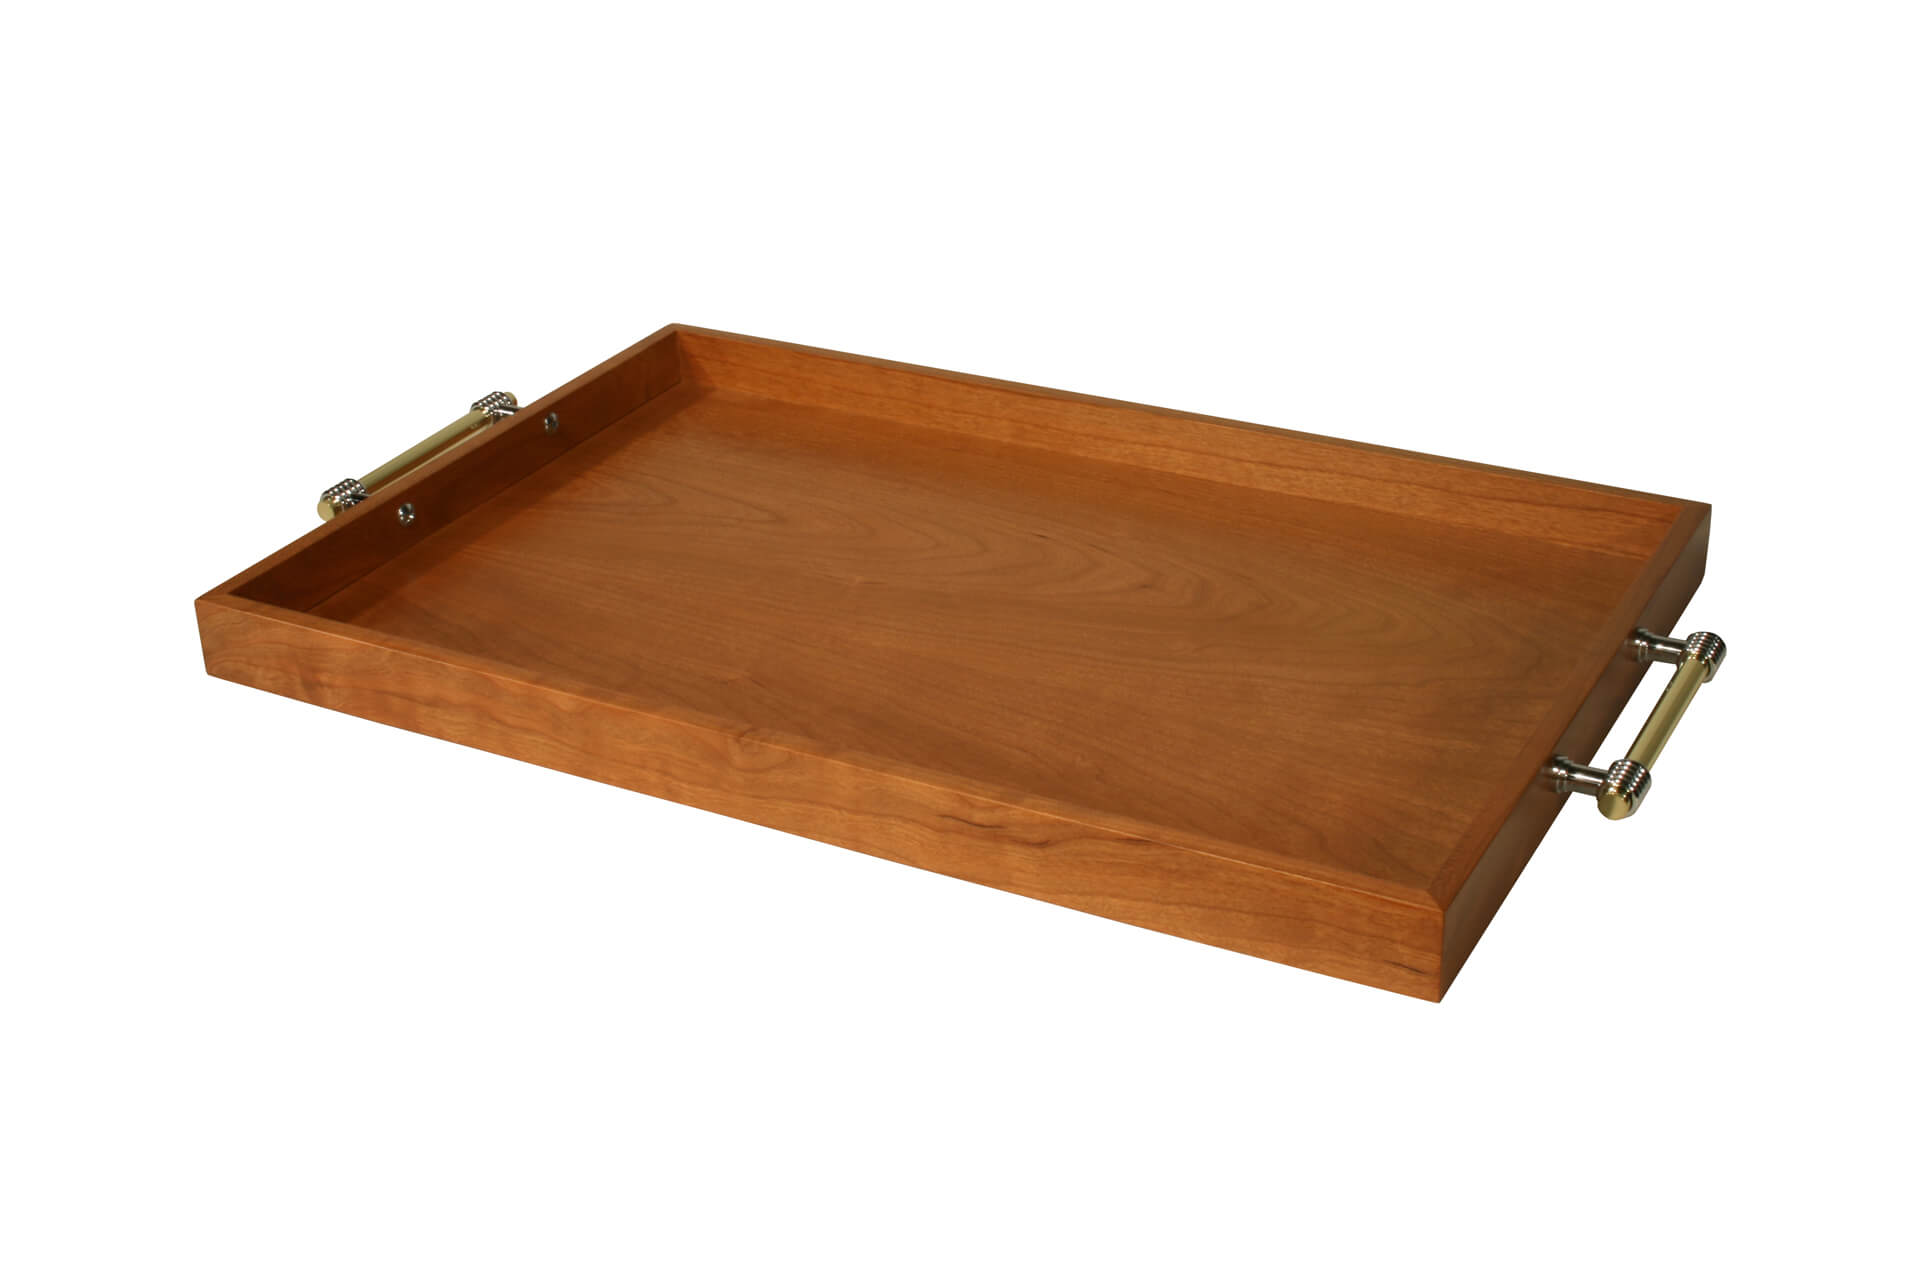 beautiful bespoke wooden tea tray for hotels and restaurants